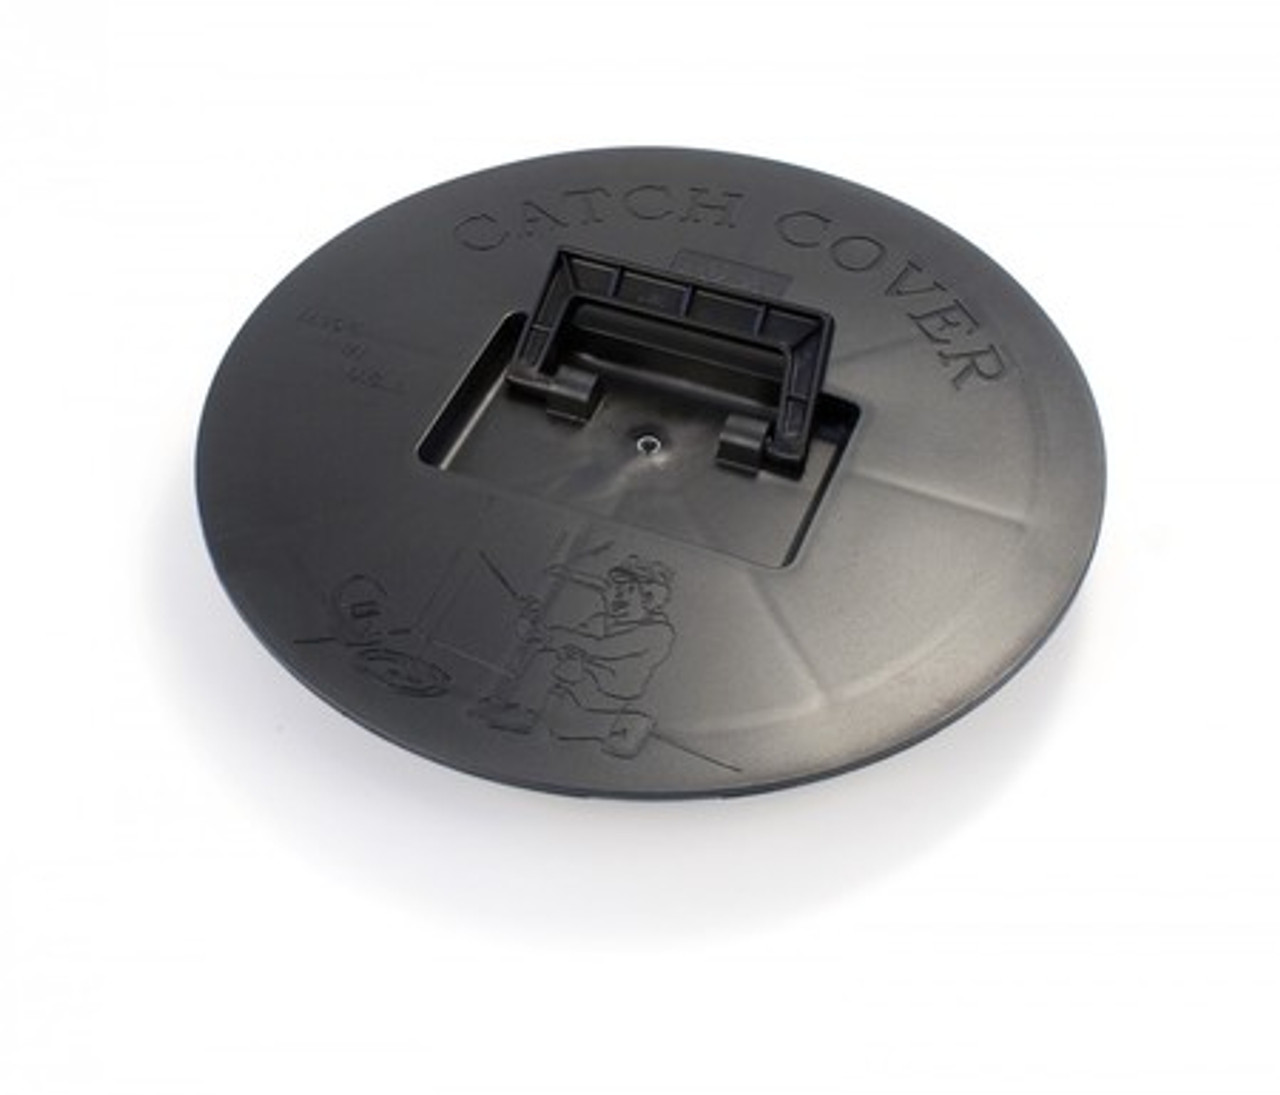 Picture of the Round Catch Cover that snaps down securely into the mounting Base